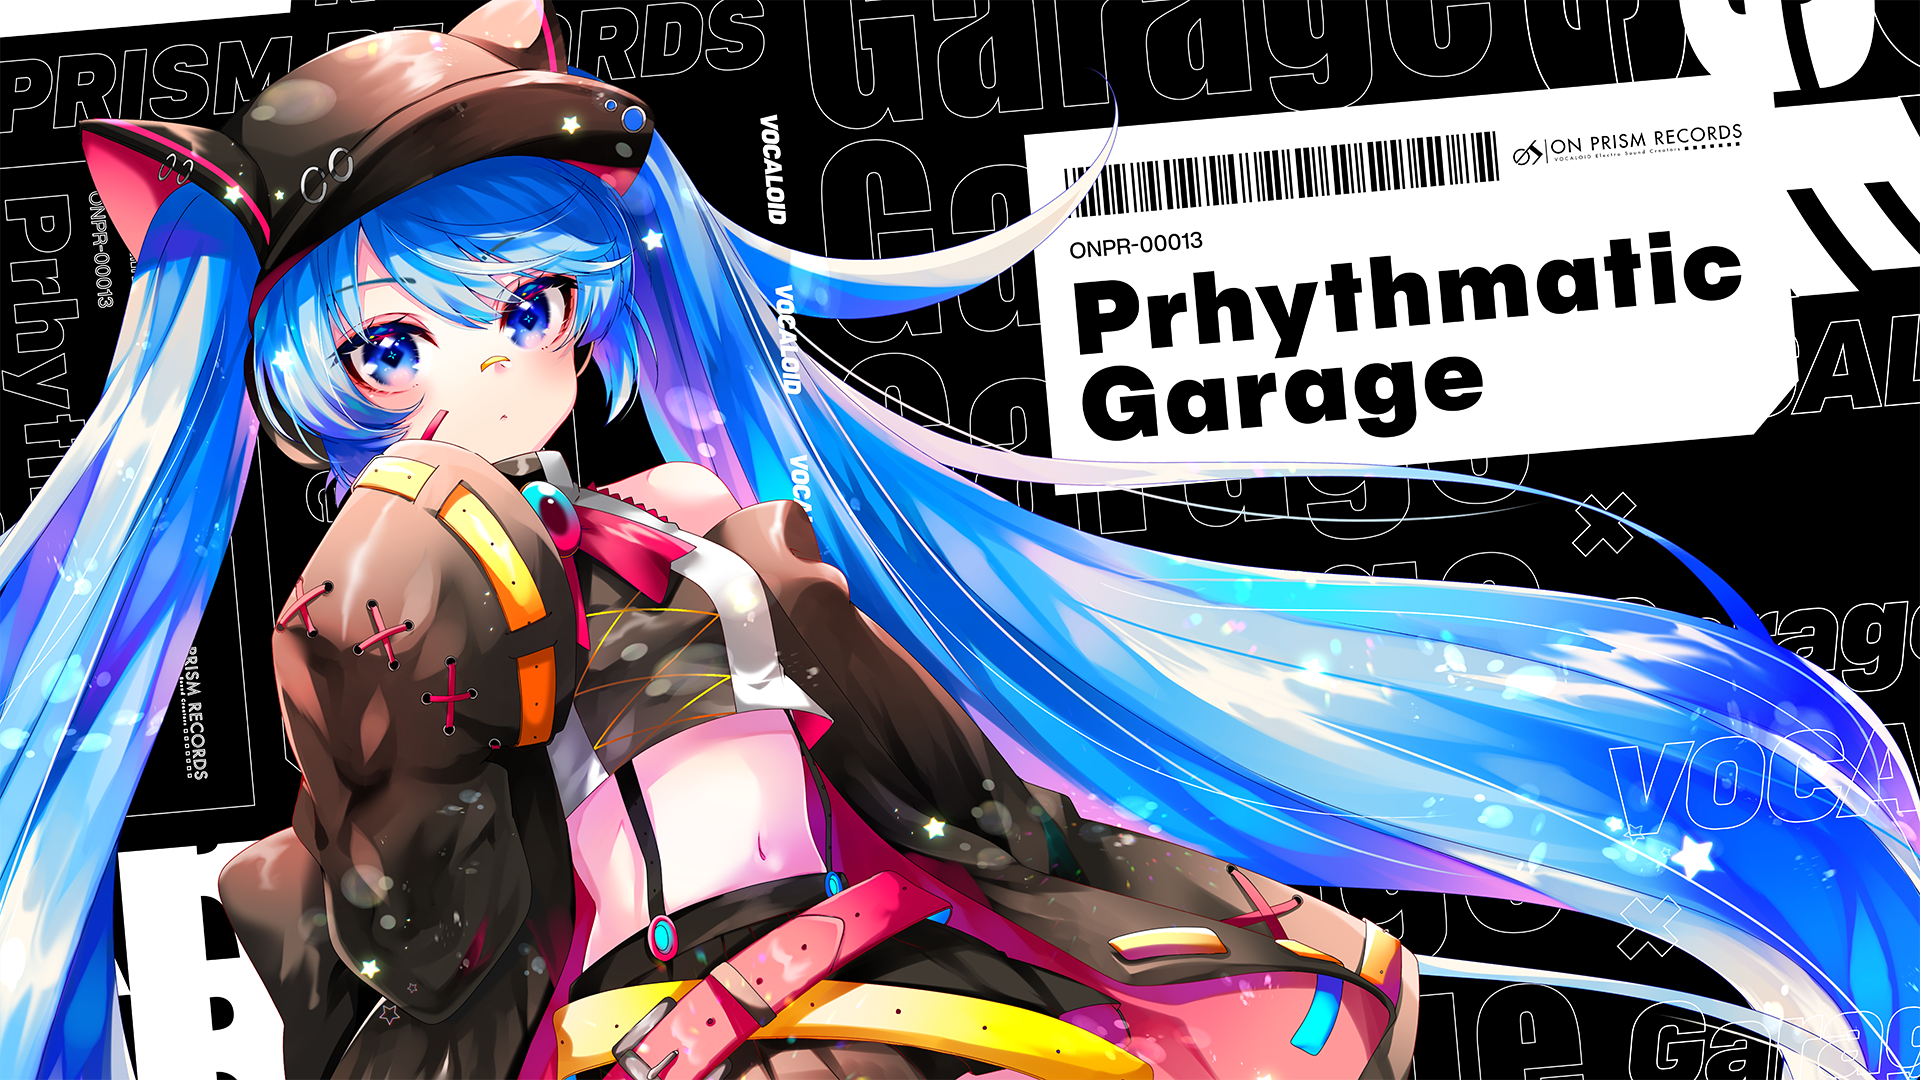 【3月】Prhythmatic Garage 制作裏話